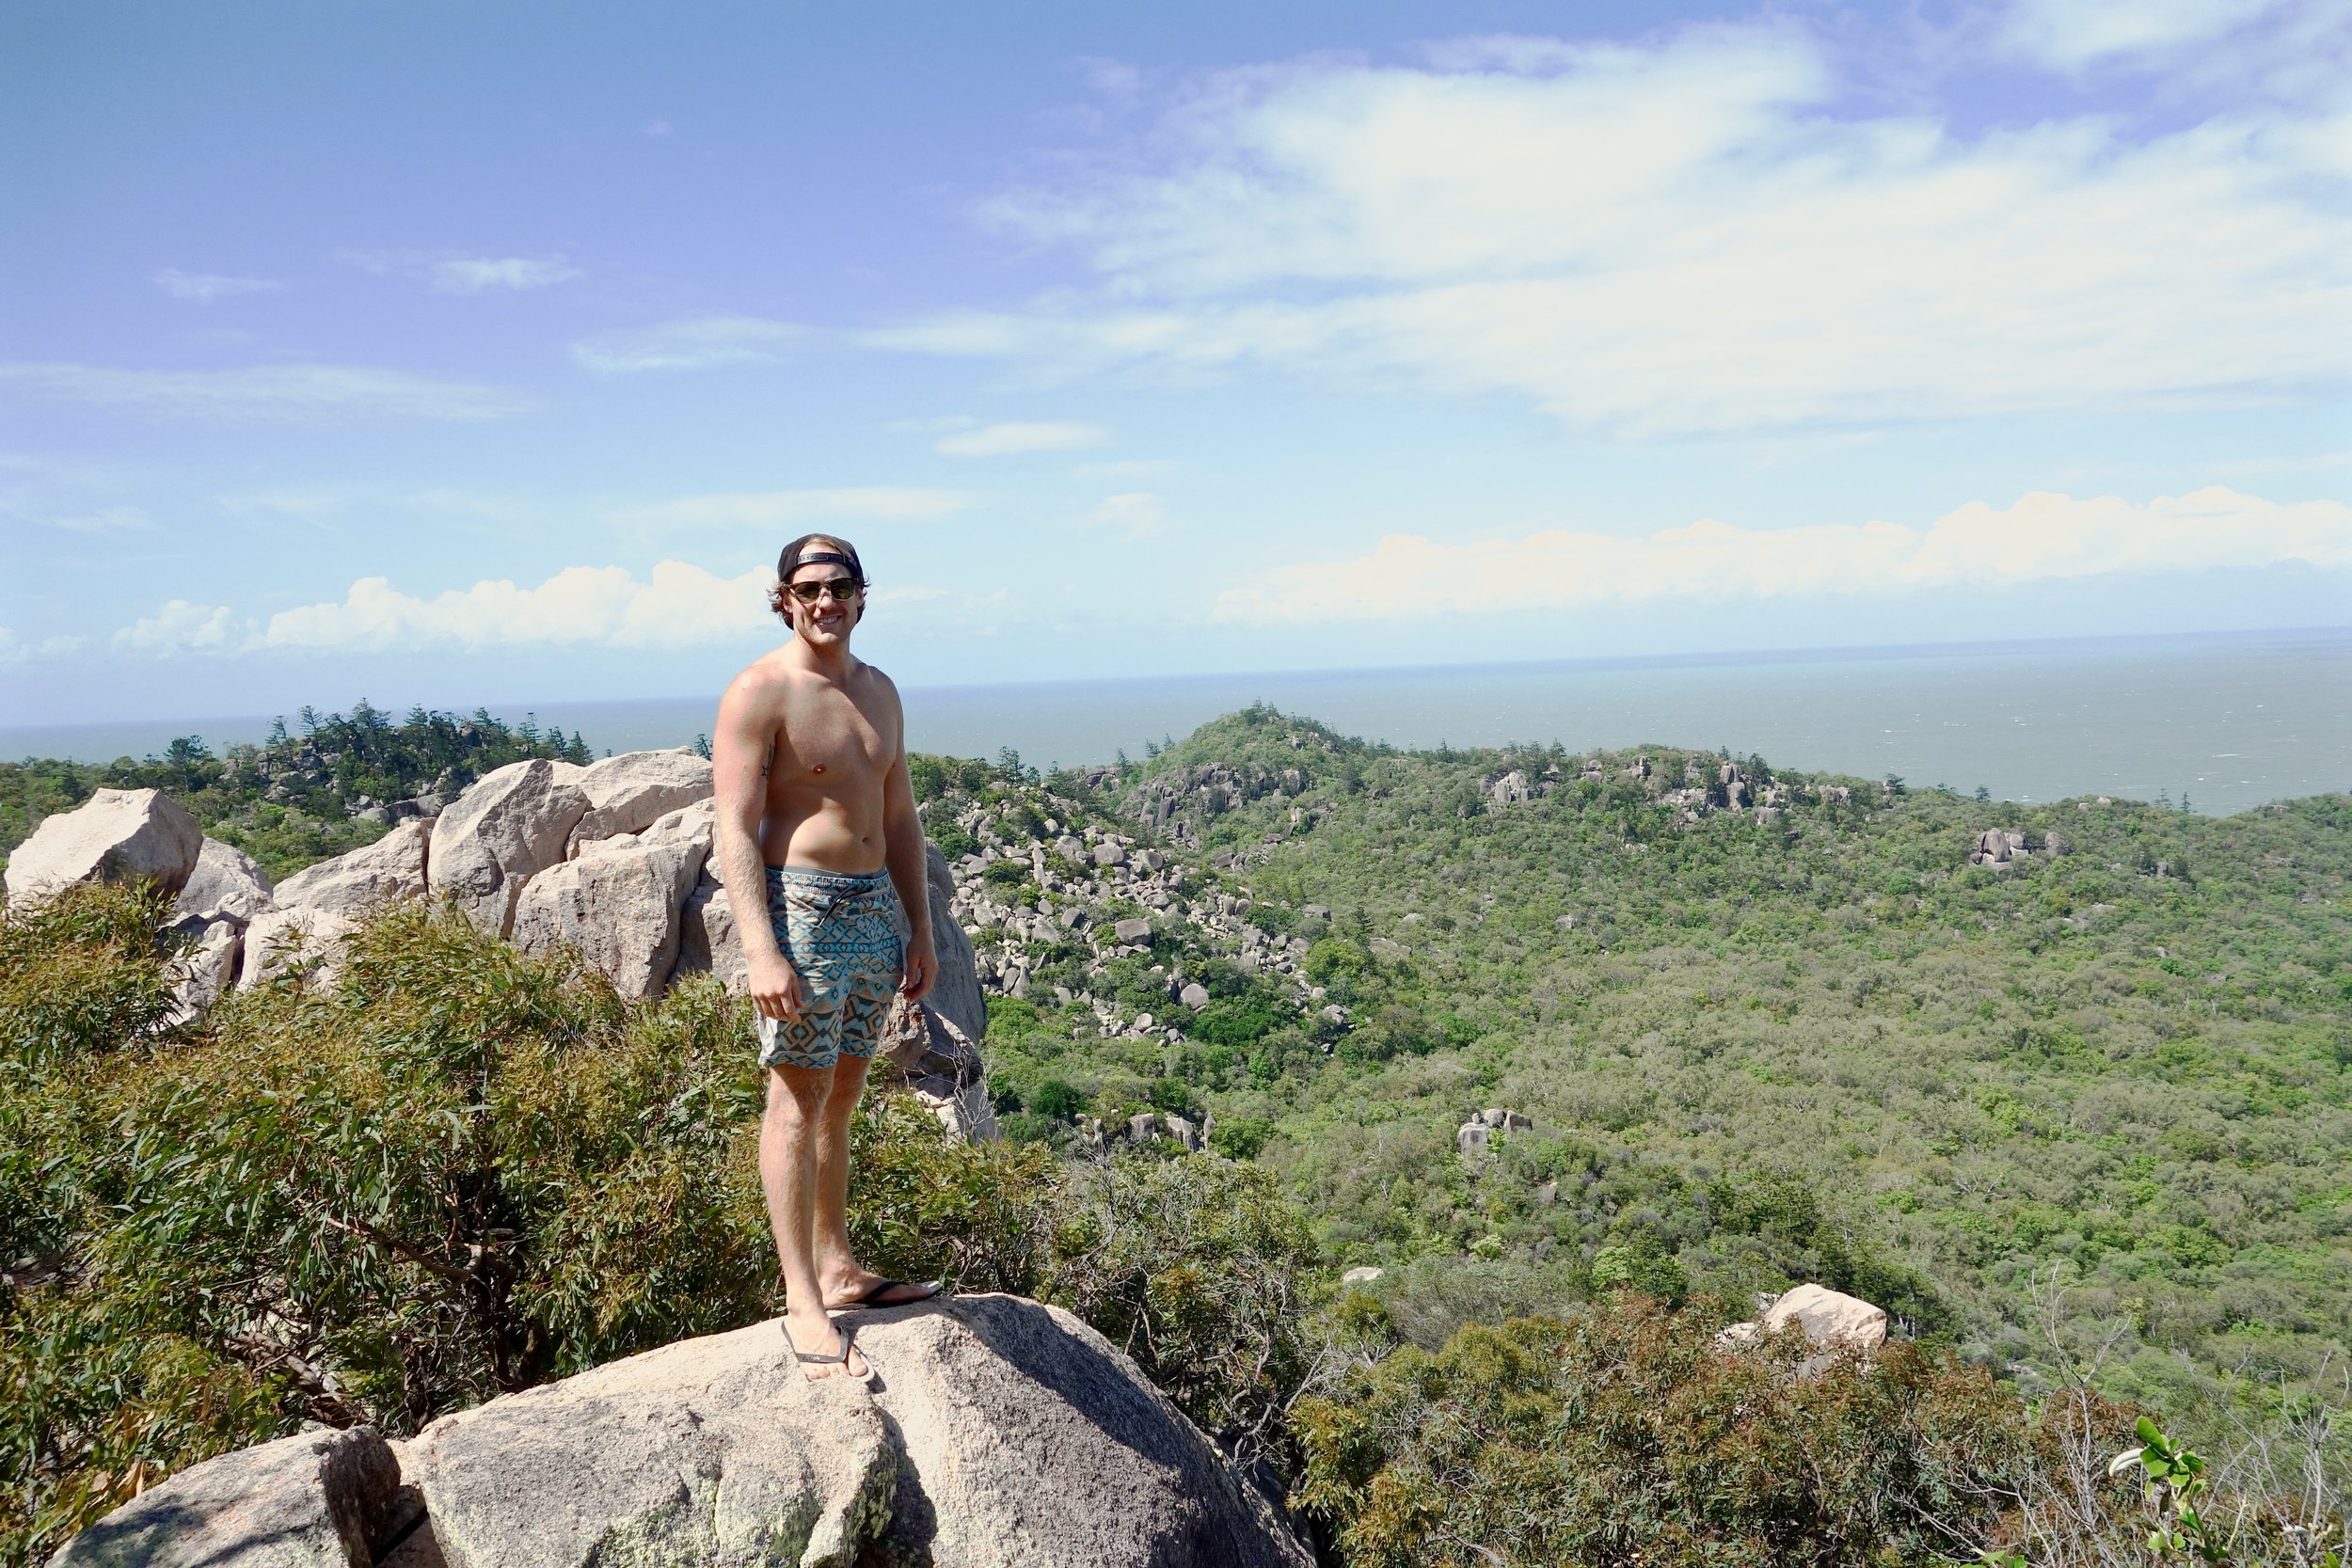 Will on Magnetic Island. A place we thought was slightly overrated, but would be enjoyable on a nice (non-windy) day.